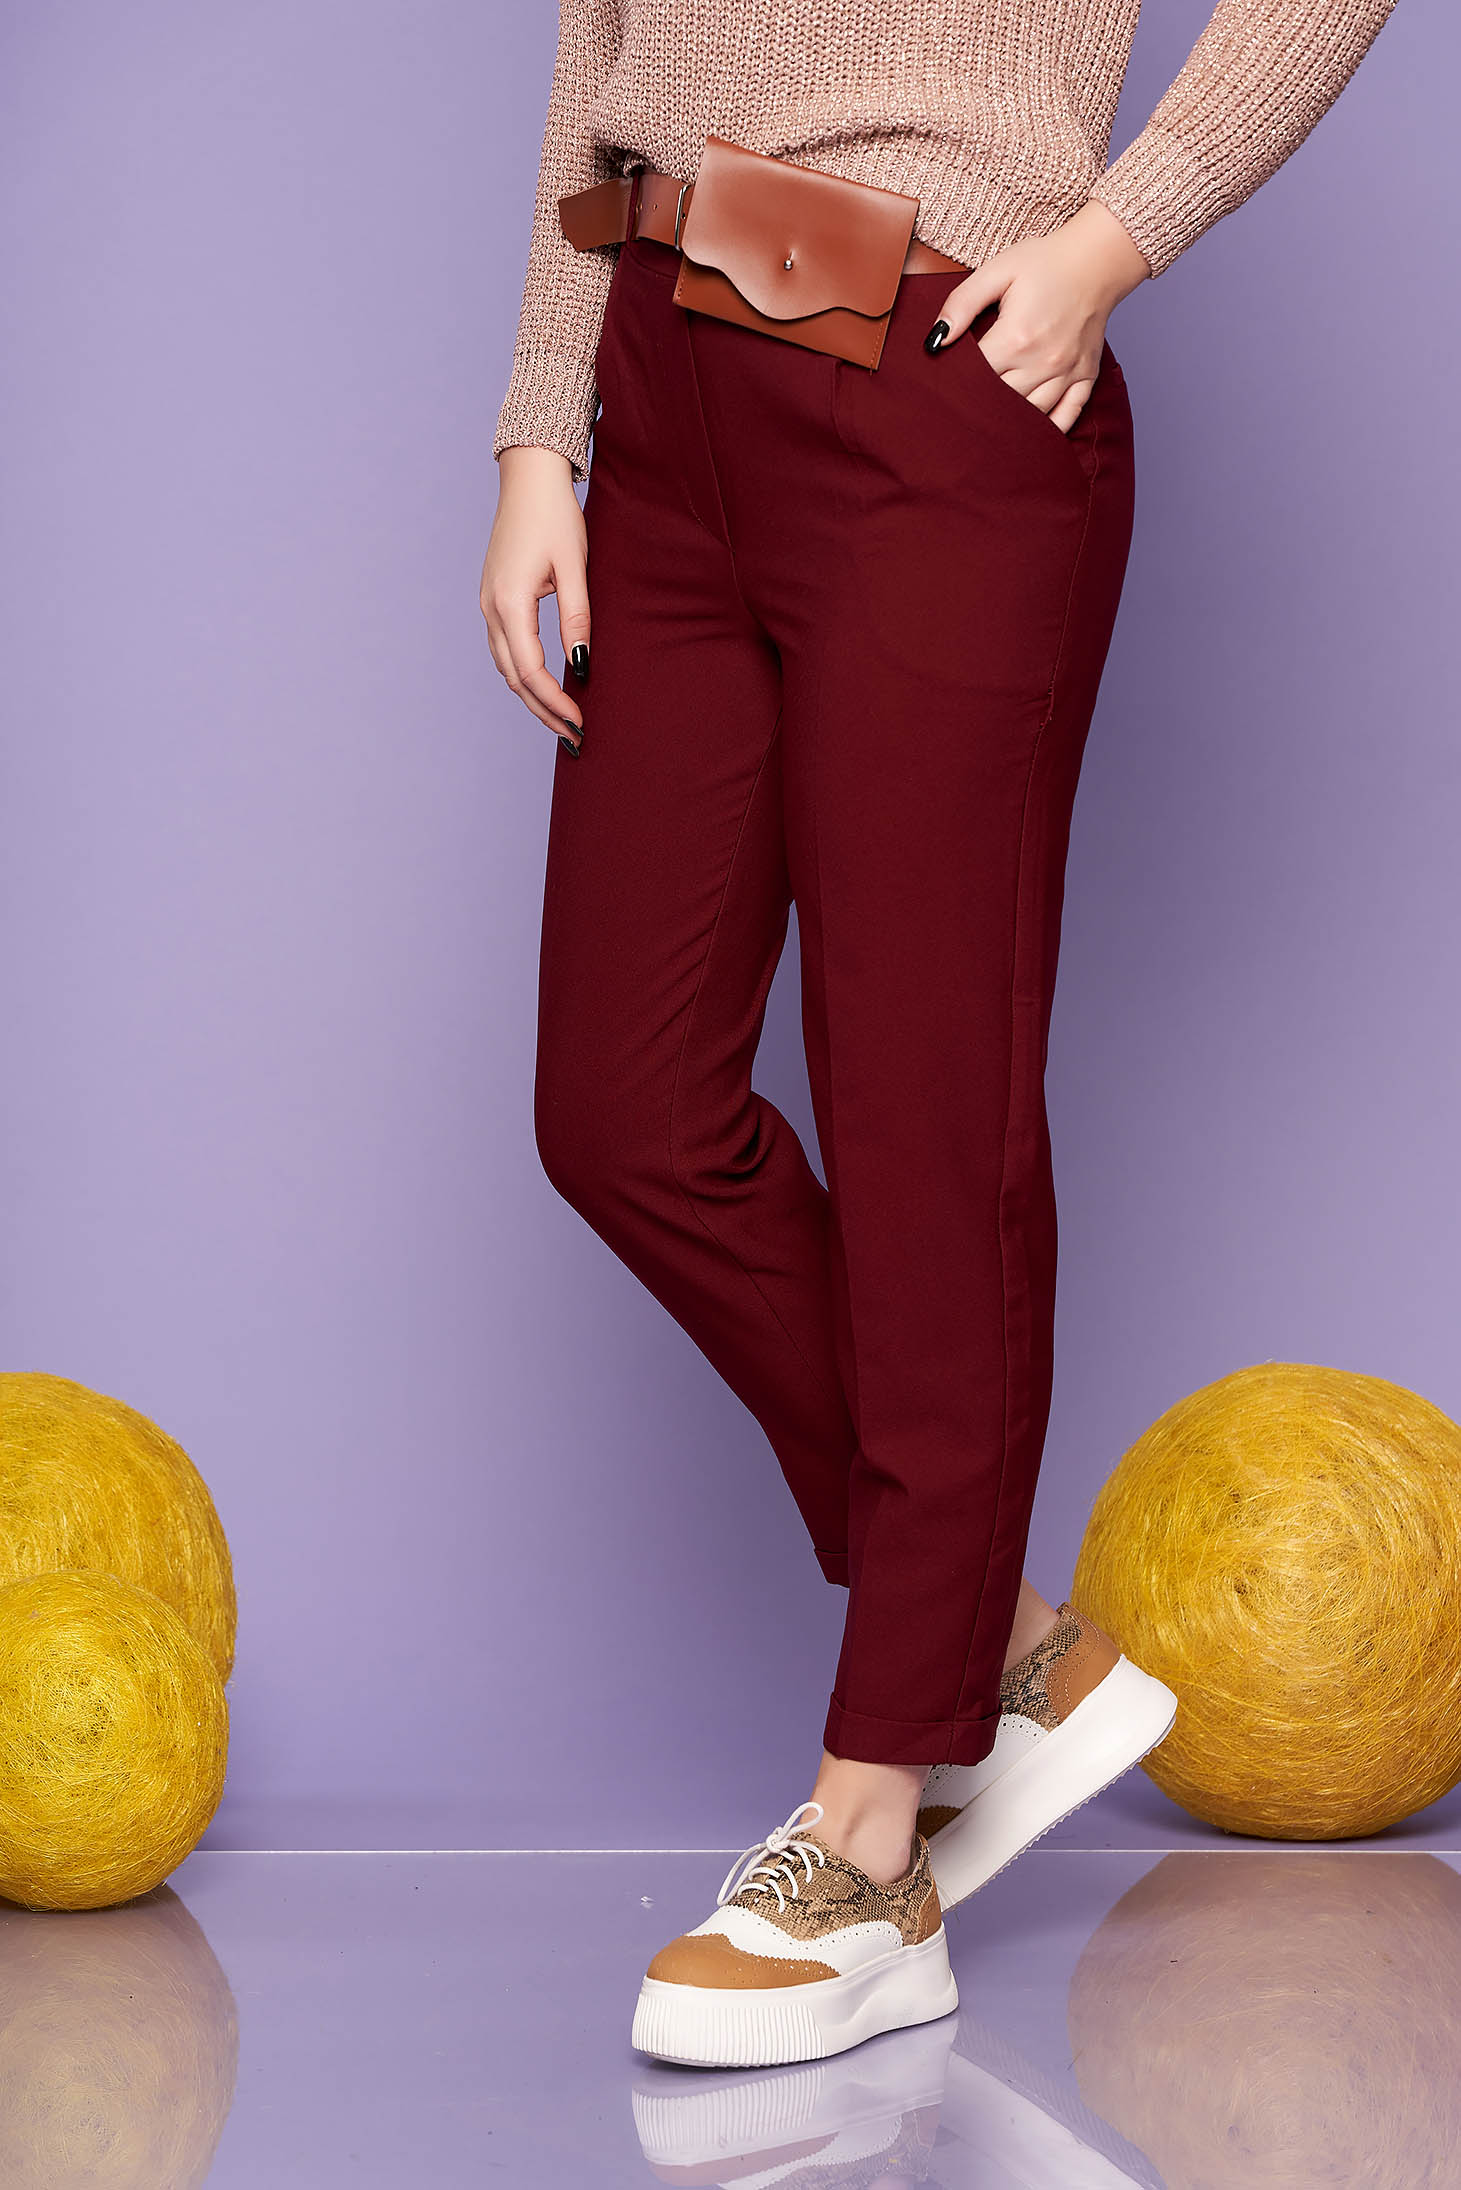 Burgundy trousers casual straight medium waist with pockets accessorized with belt